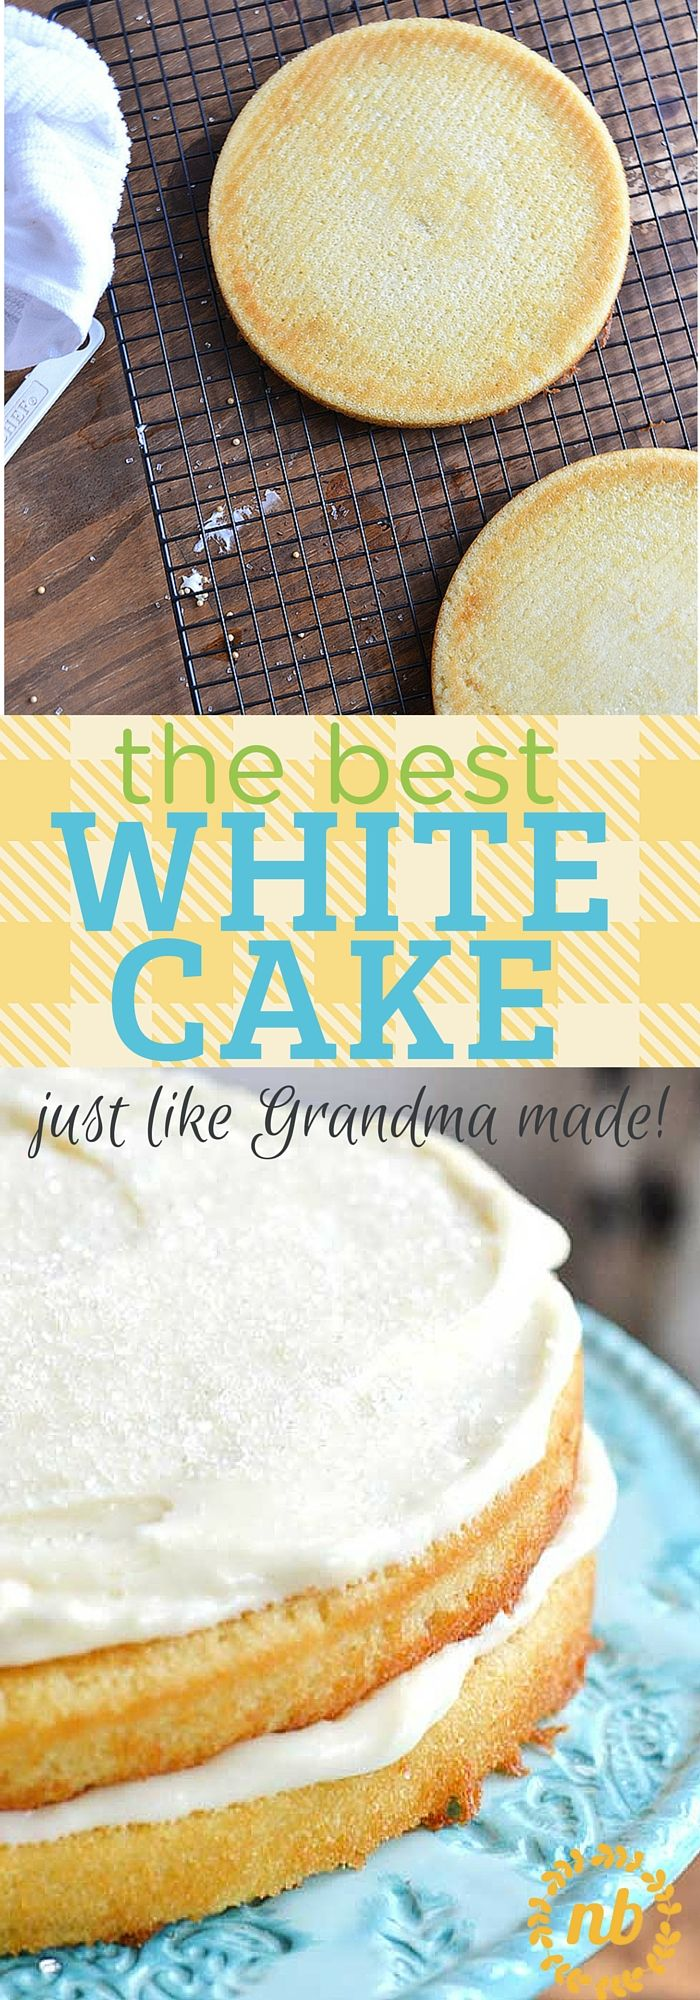 This white cake recipe is what we consider to be the absolute best version, because it's a great combination of delicious and easy to make. Perfection!